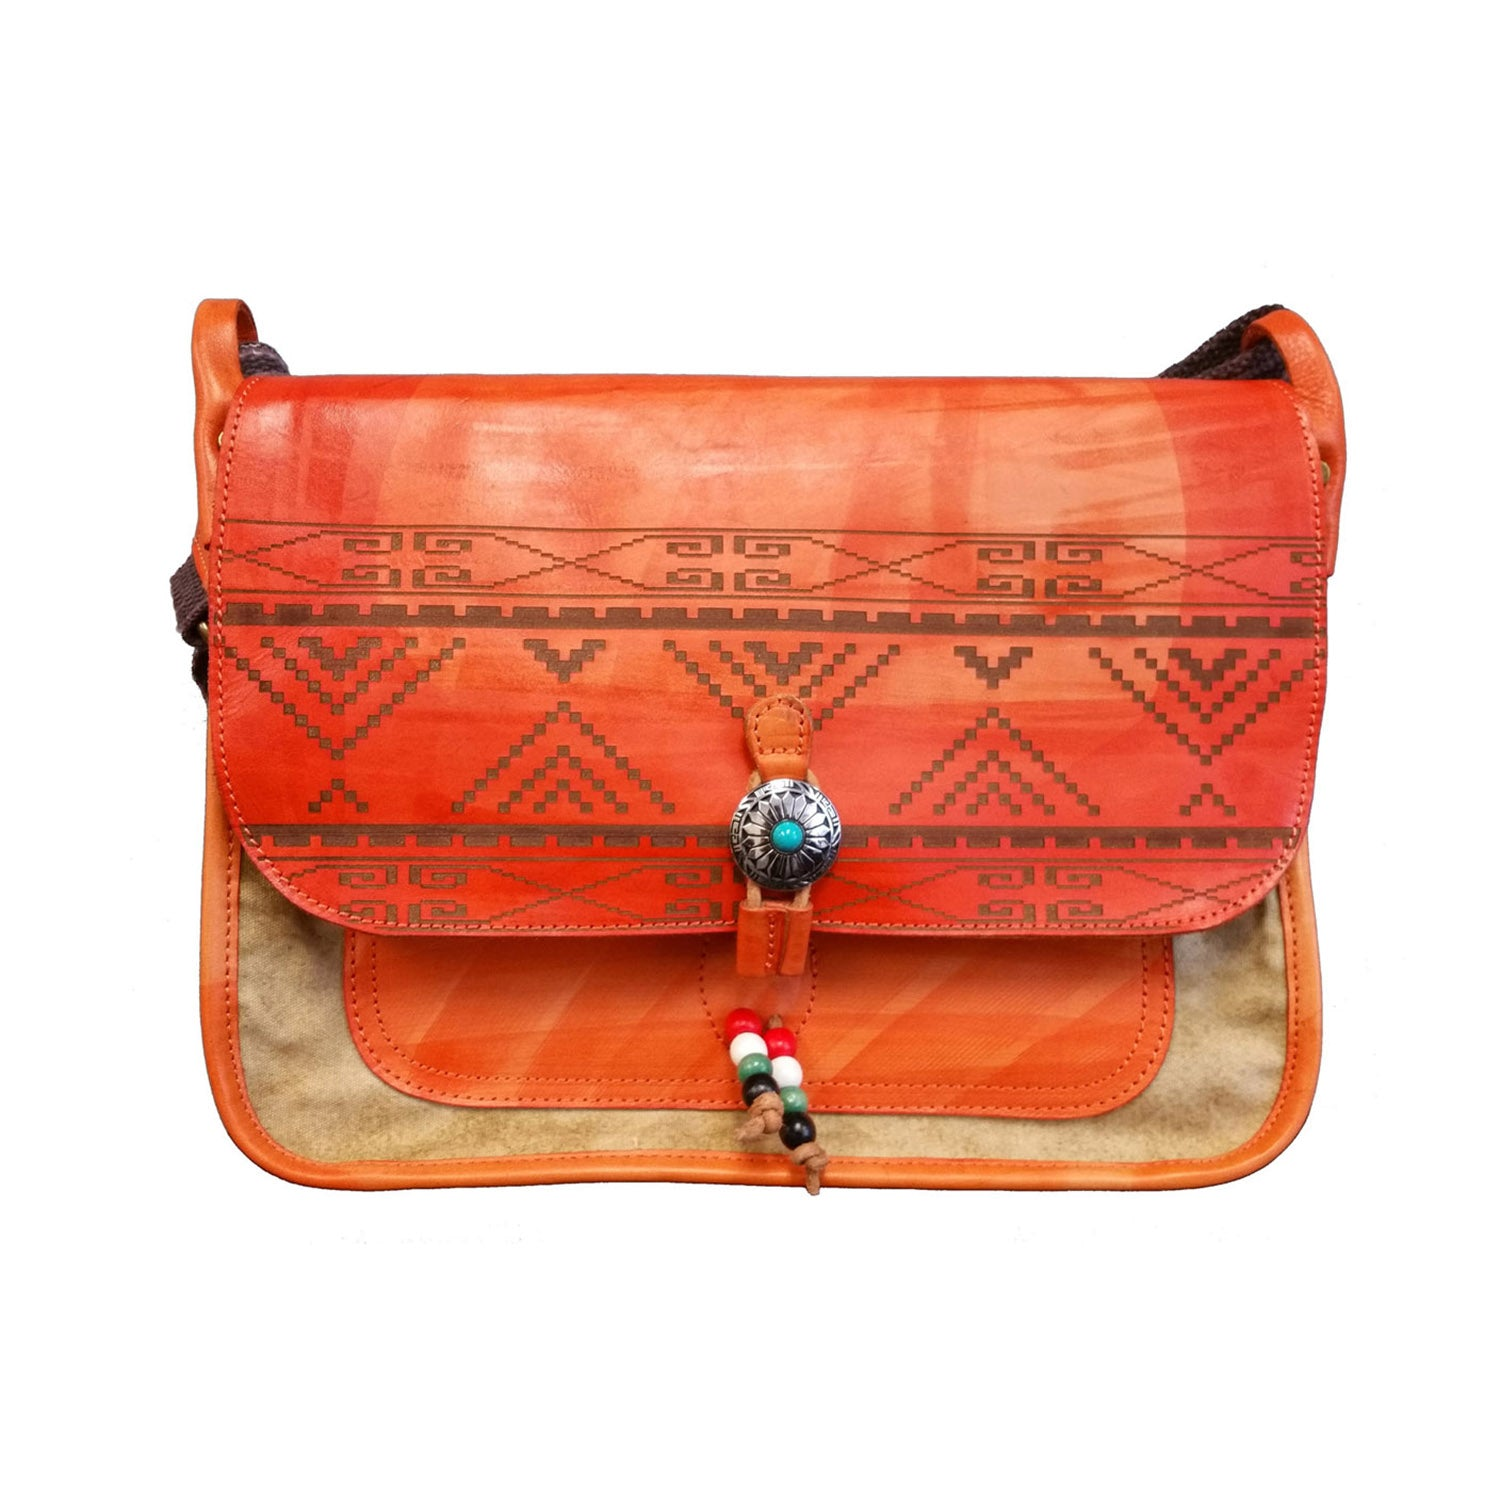 BOHO ECHO MESSENGER